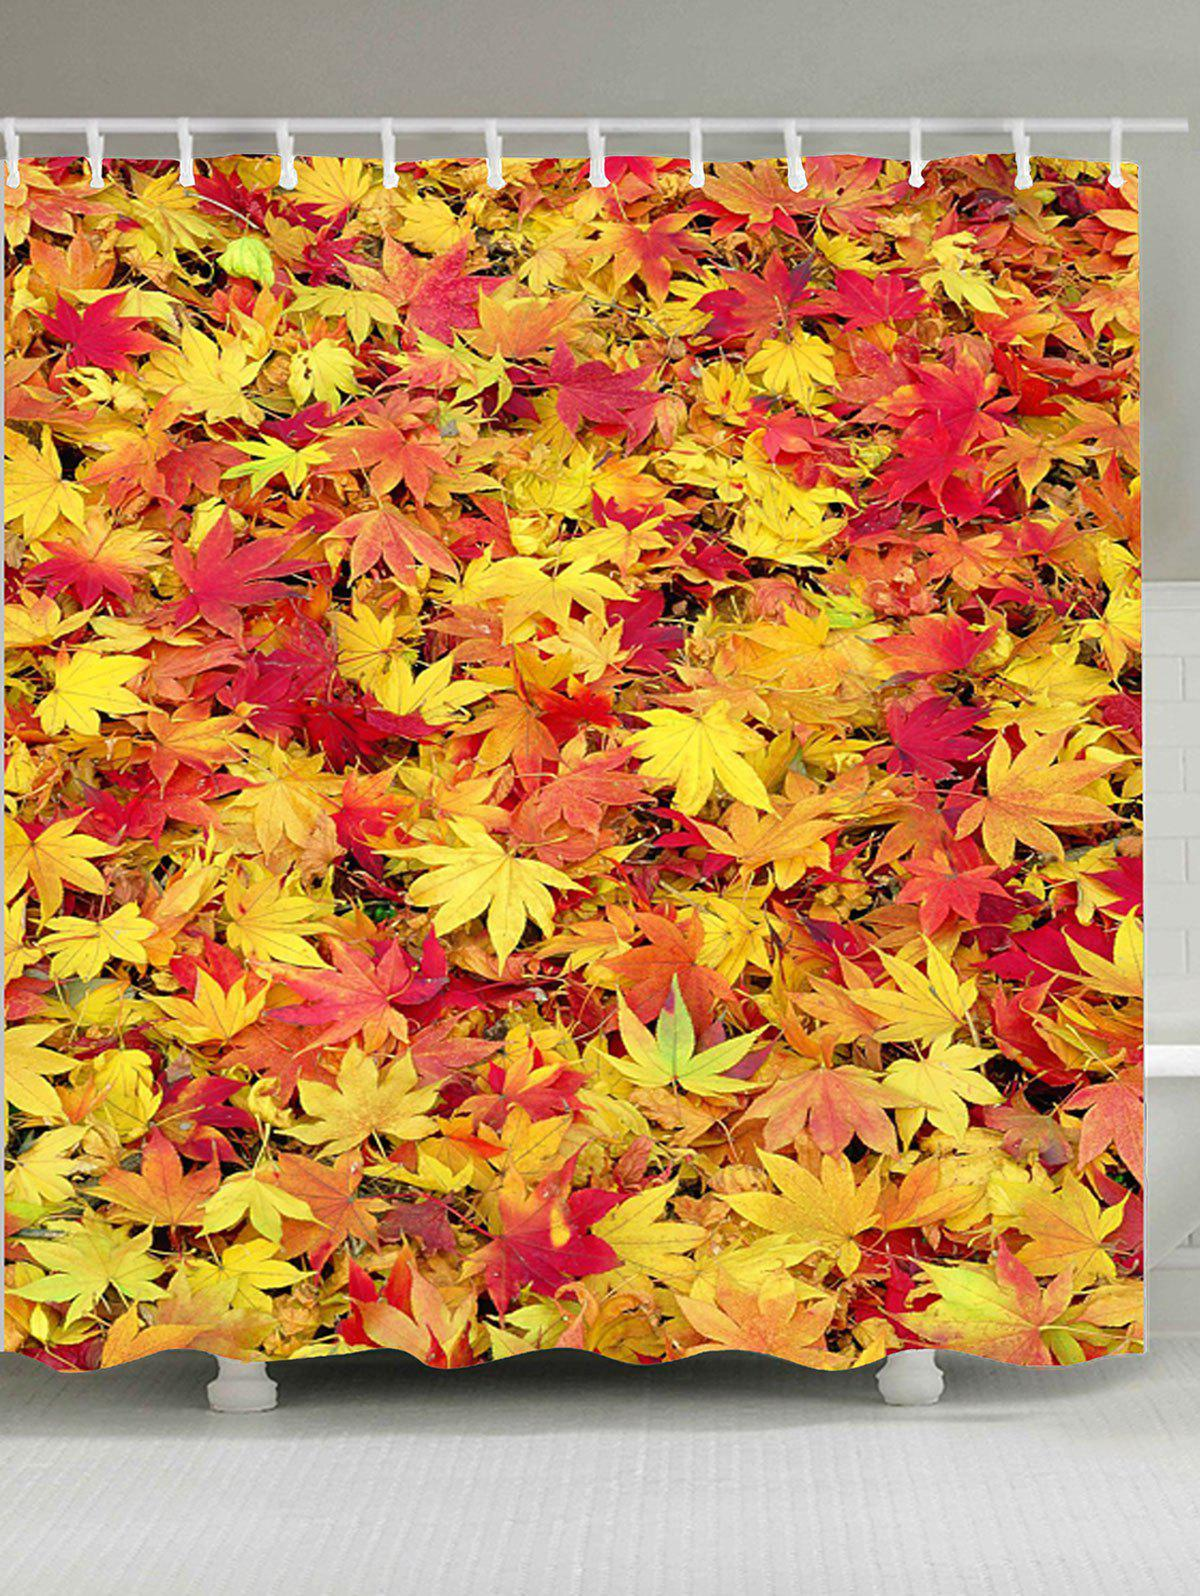 Falling Maple Leaves Shower Curtain For Bathroom